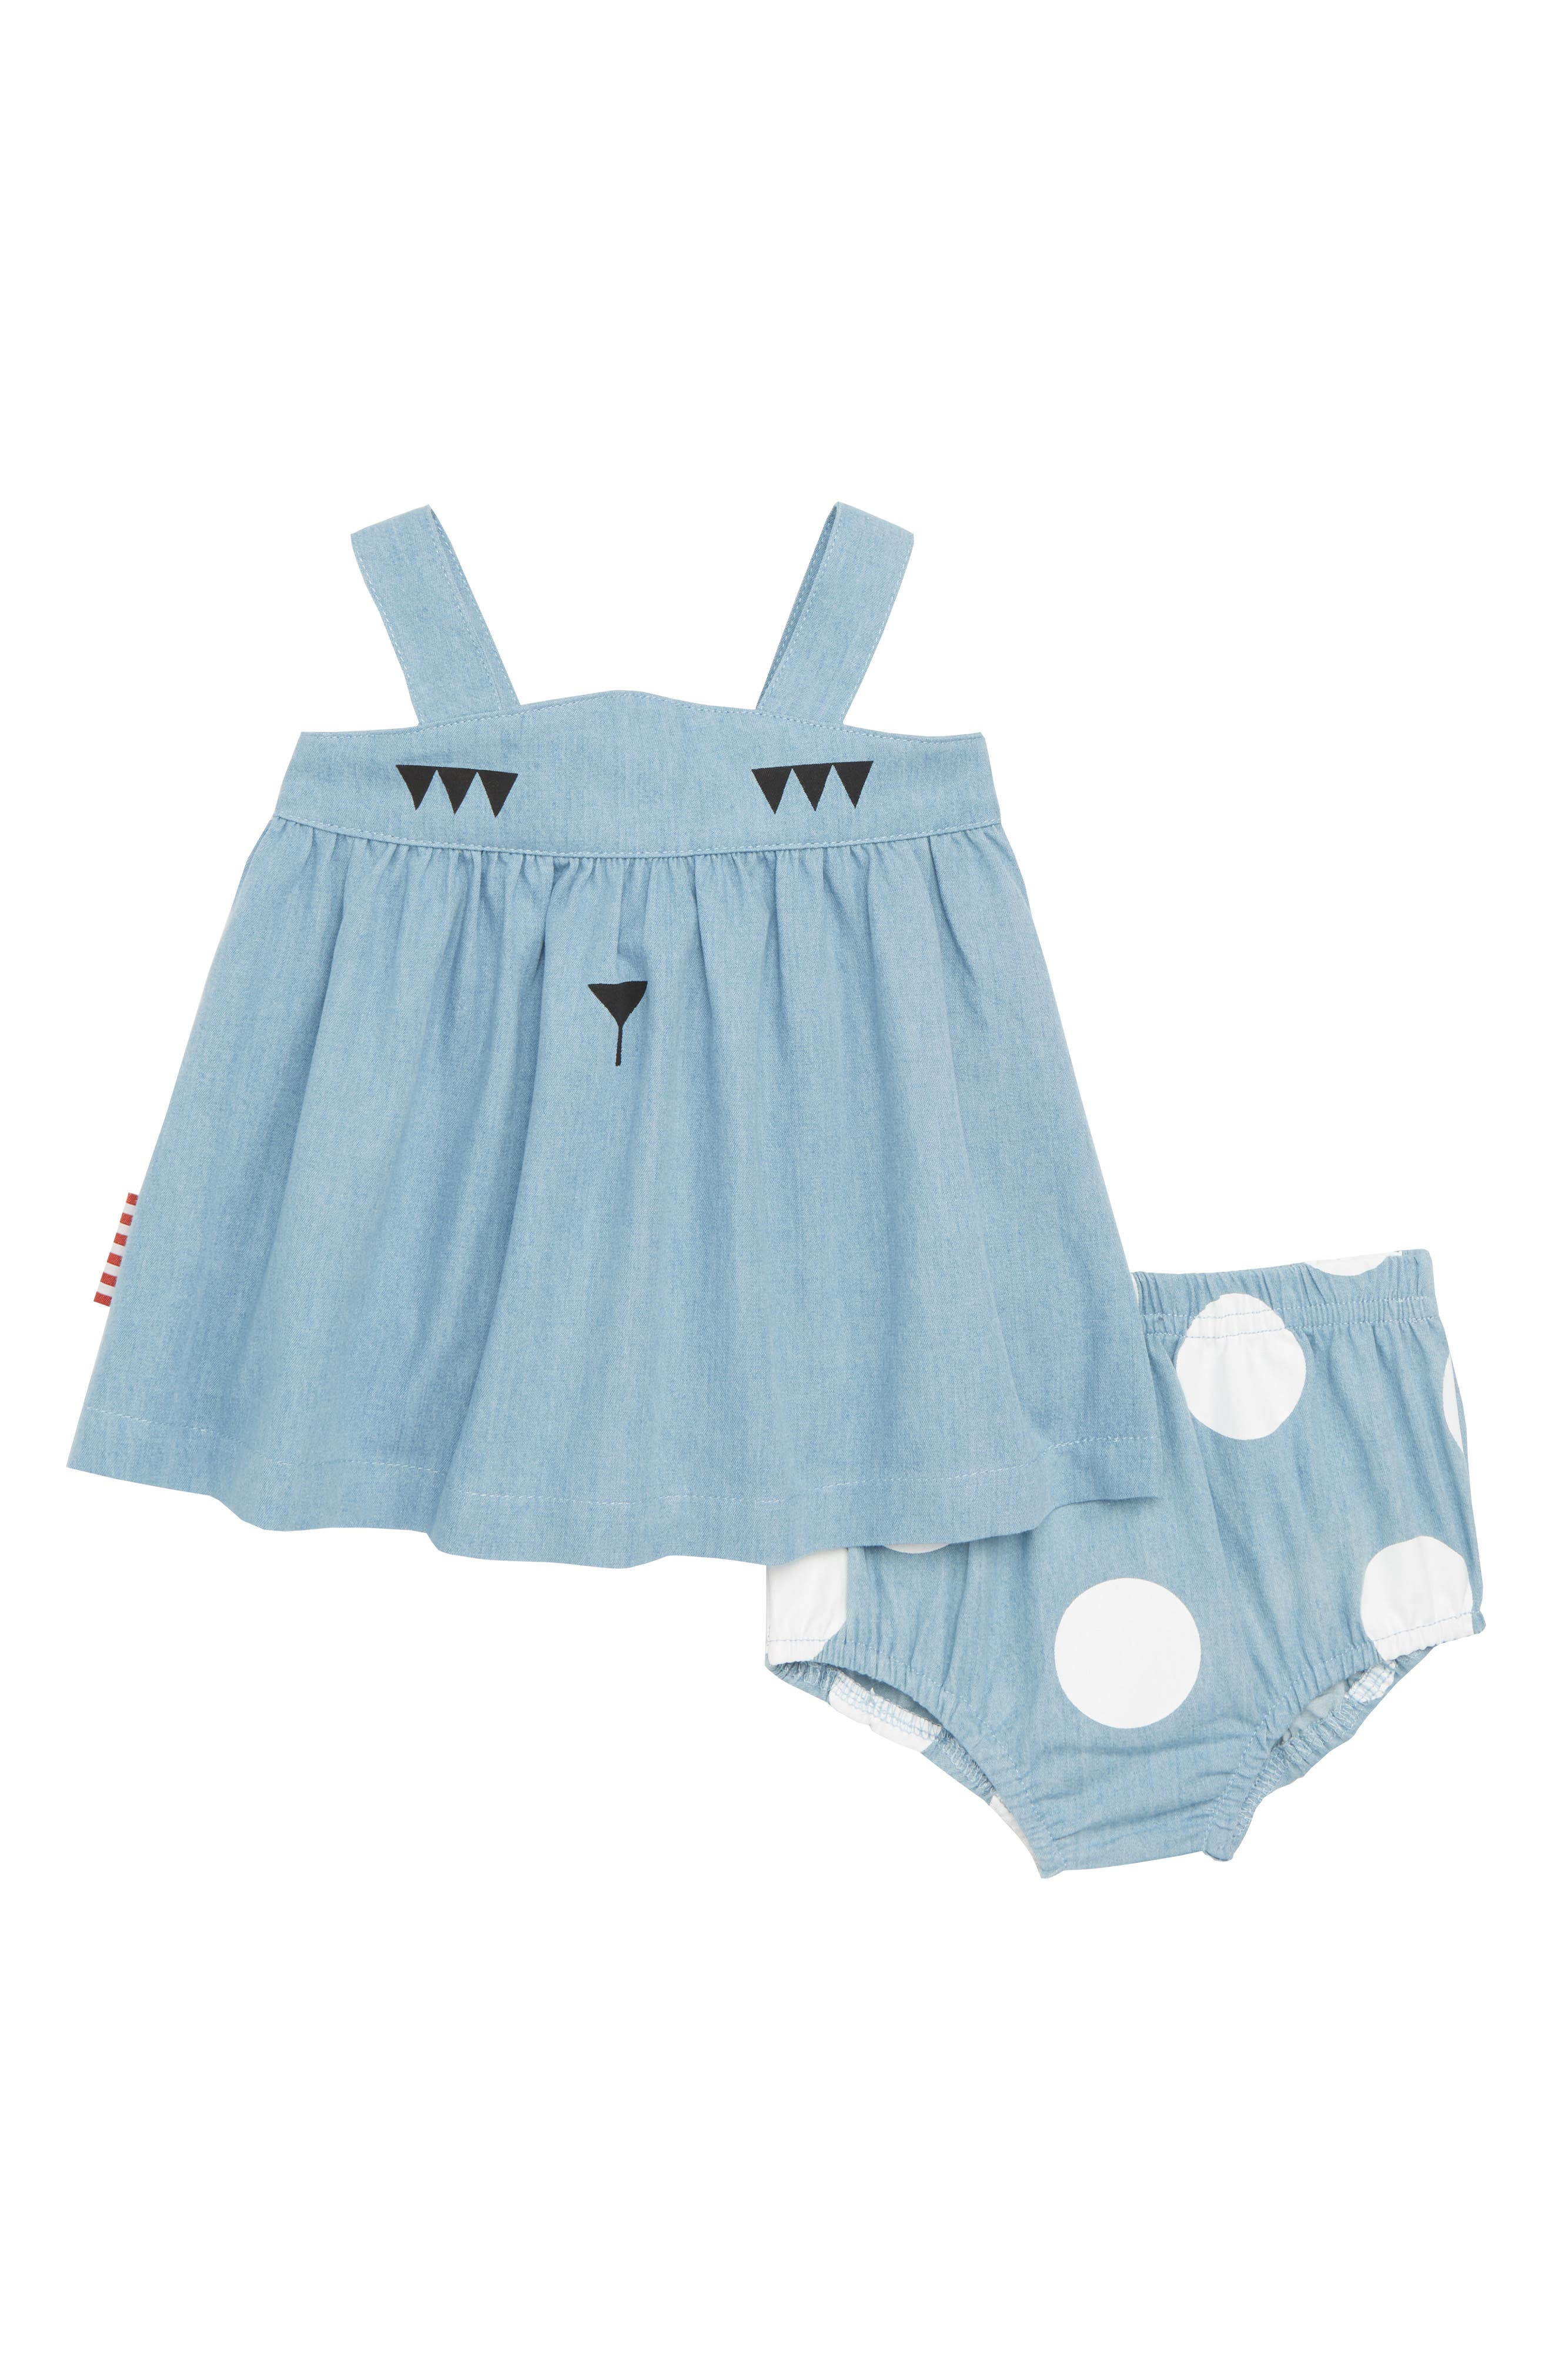 Swing Top & Bloomers Set,                         Main,                         color, Chambray